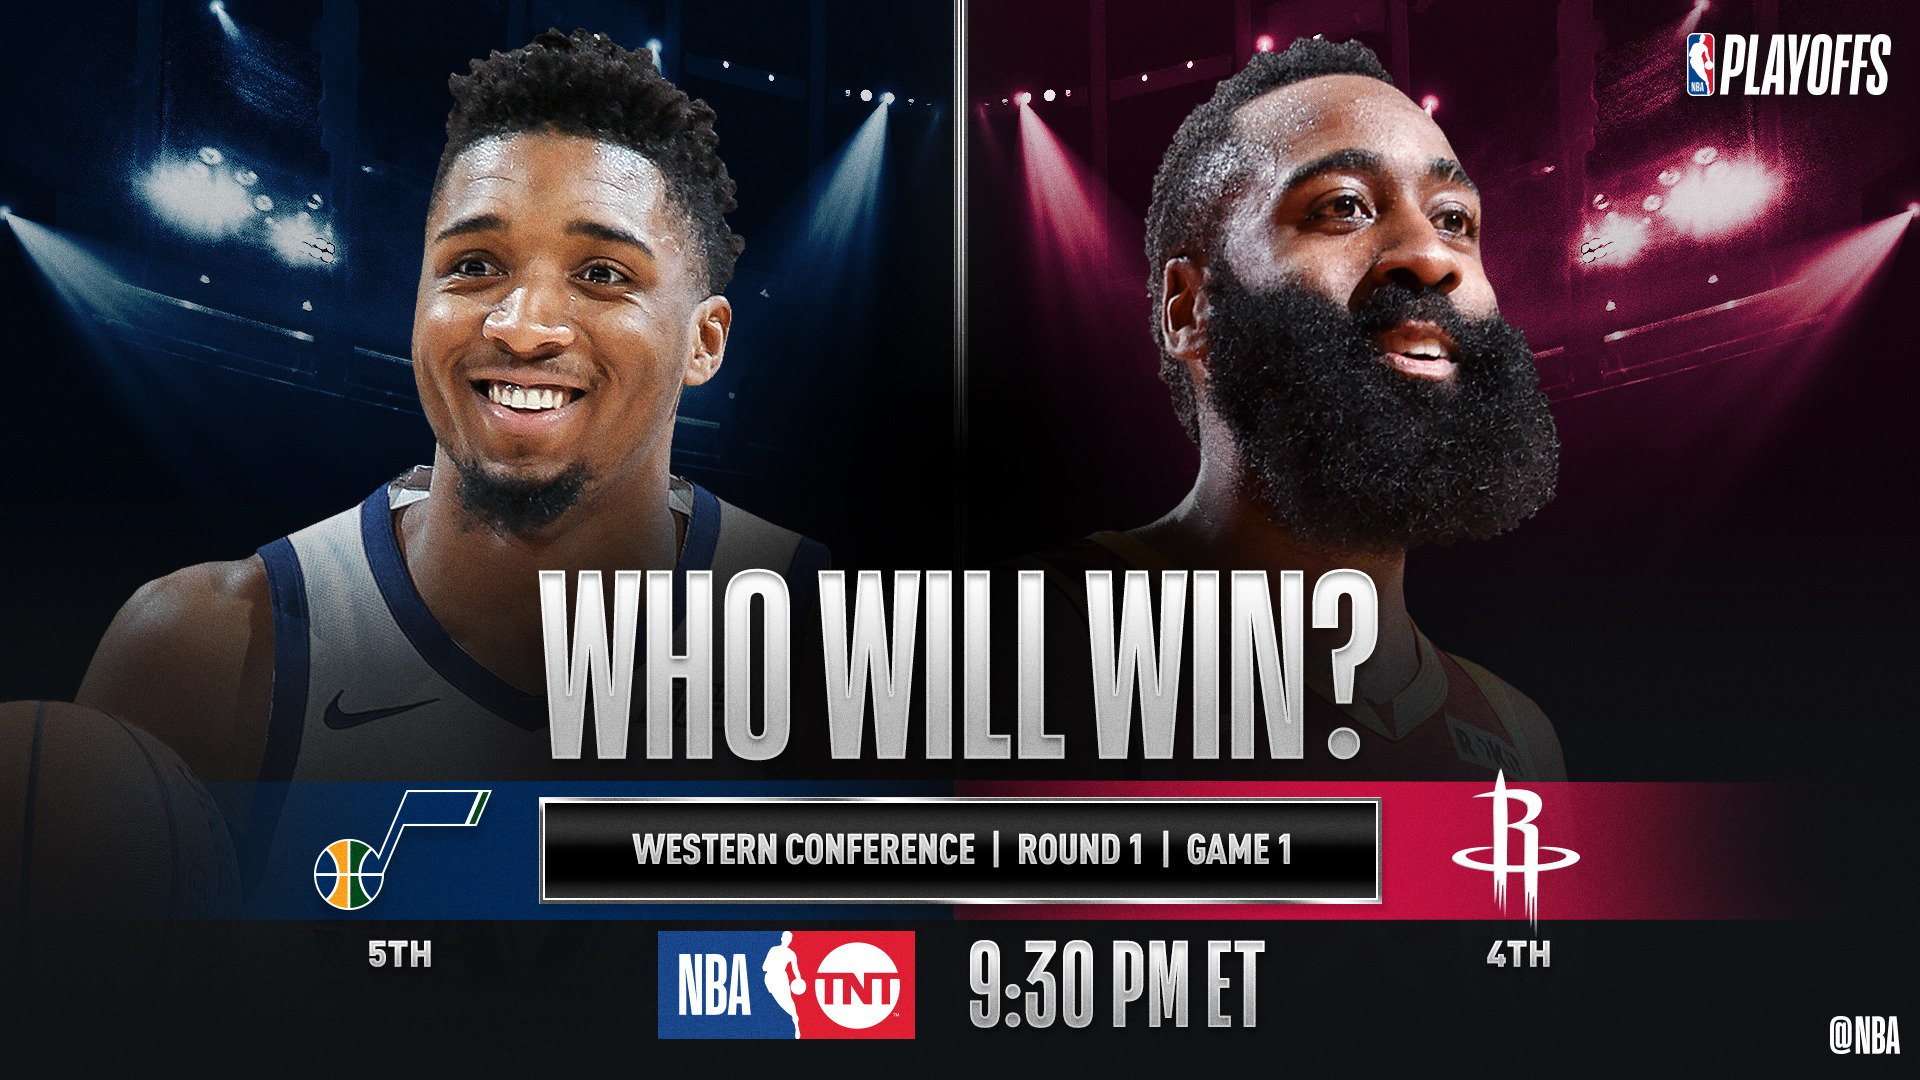 �� No. 5 in the West @utahjazz visit No. 4 @HoustonRockets at 9:30pm/et for Game 1 (@NBAonTNT)! #NBAPlayoffs �� https://t.co/ini7CgFFrH